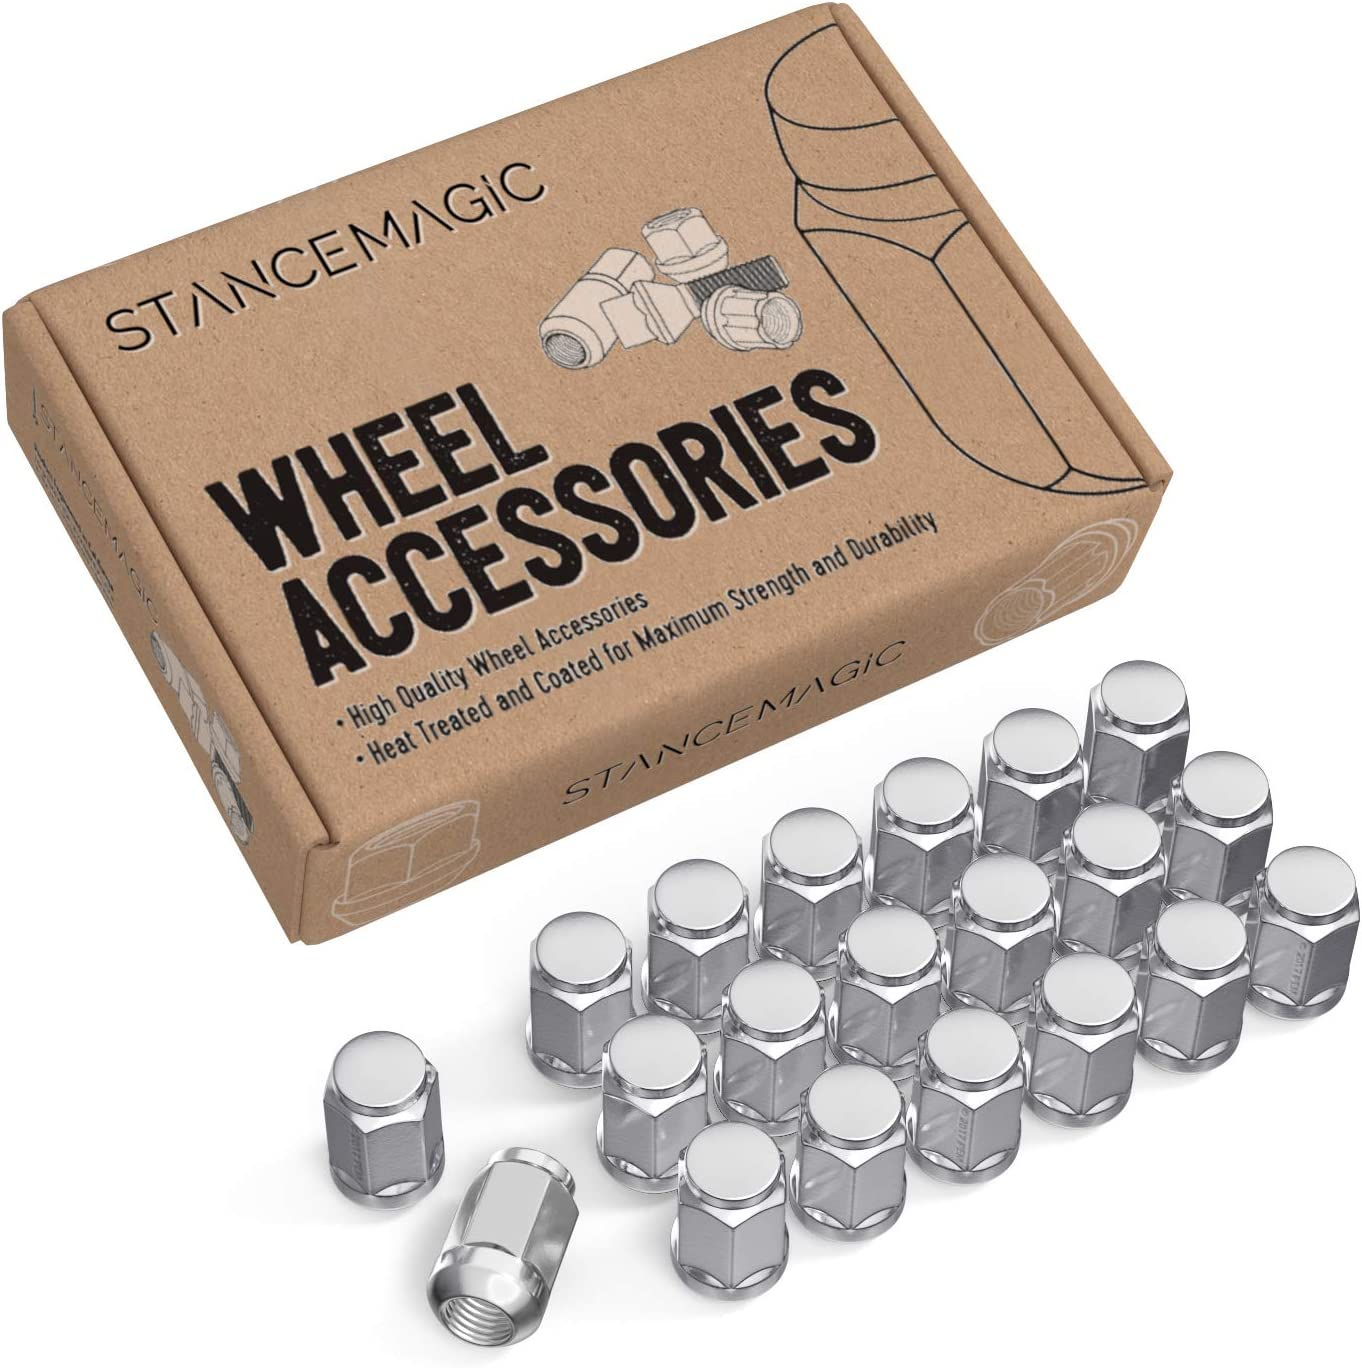 for many Honda Acura vehicles Metric 12x1.5 Threads 1.4 Length Ball Radius Seat Closed End Installs with 19mm or 3//4 Hex Socket 20pc Silver//Chrome Bulge Lug Nuts